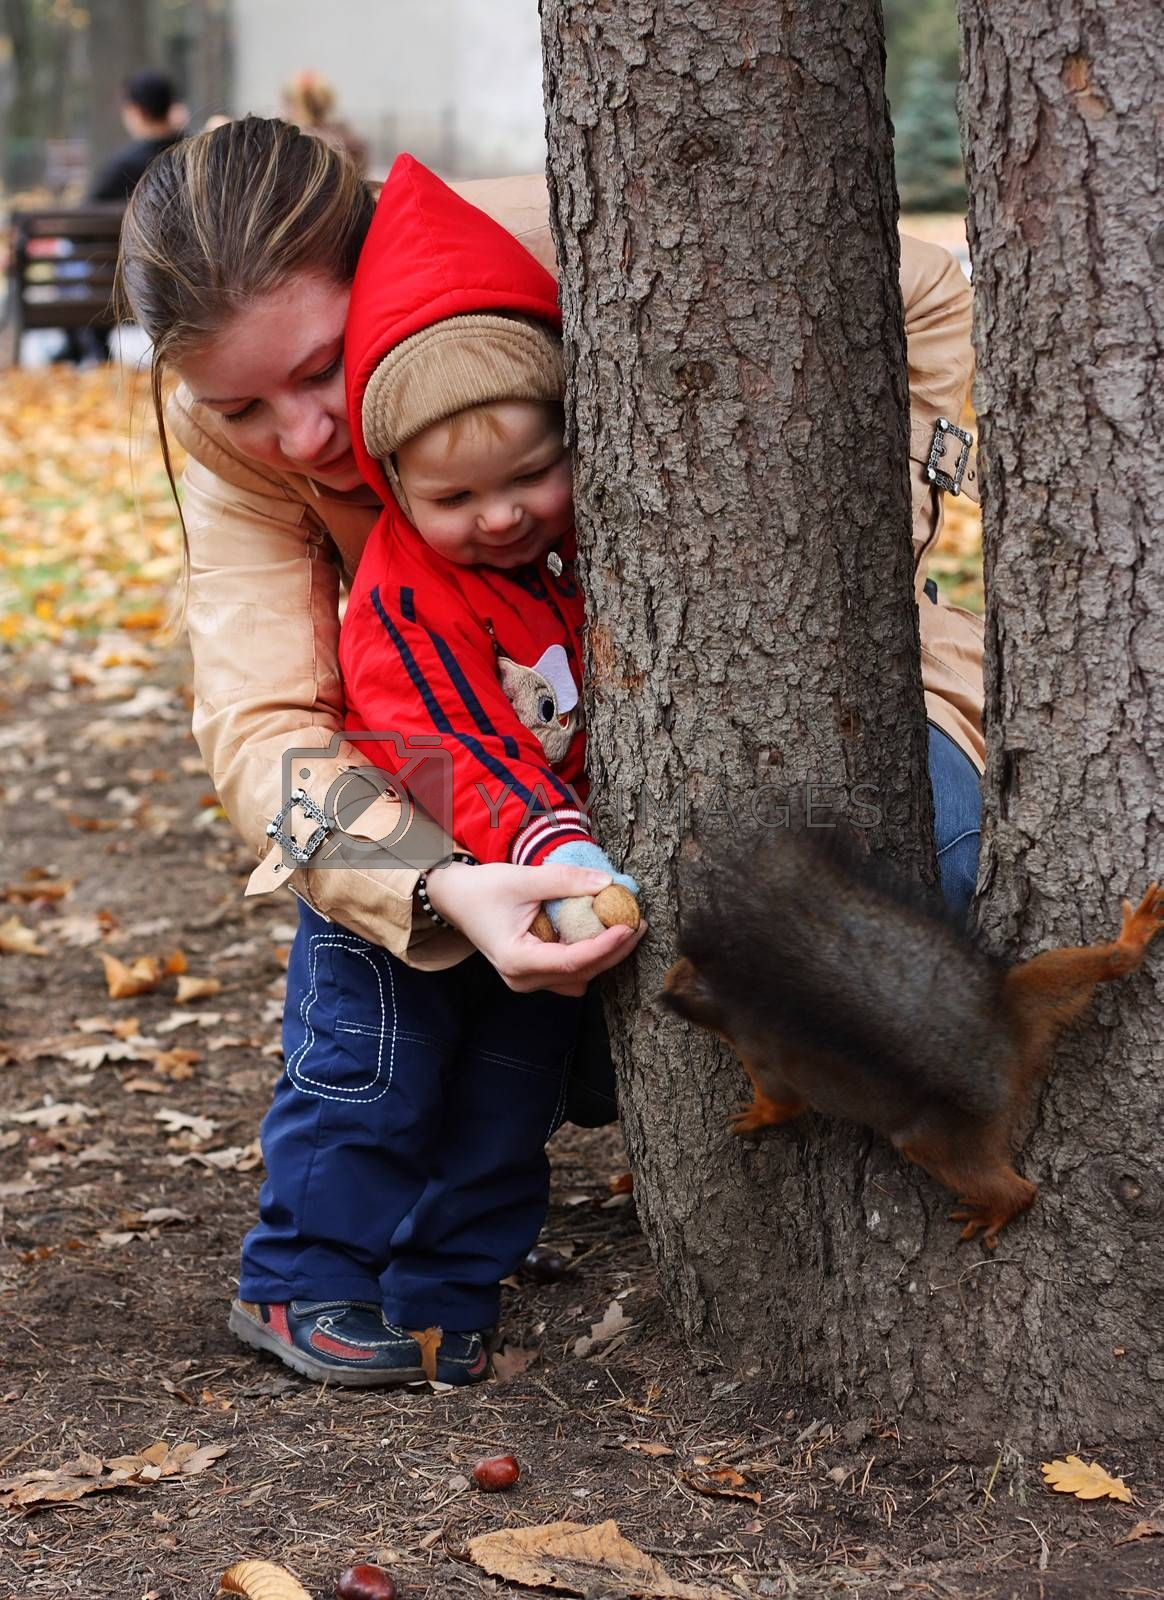 Little boy with mother feeds a squirrel in a park